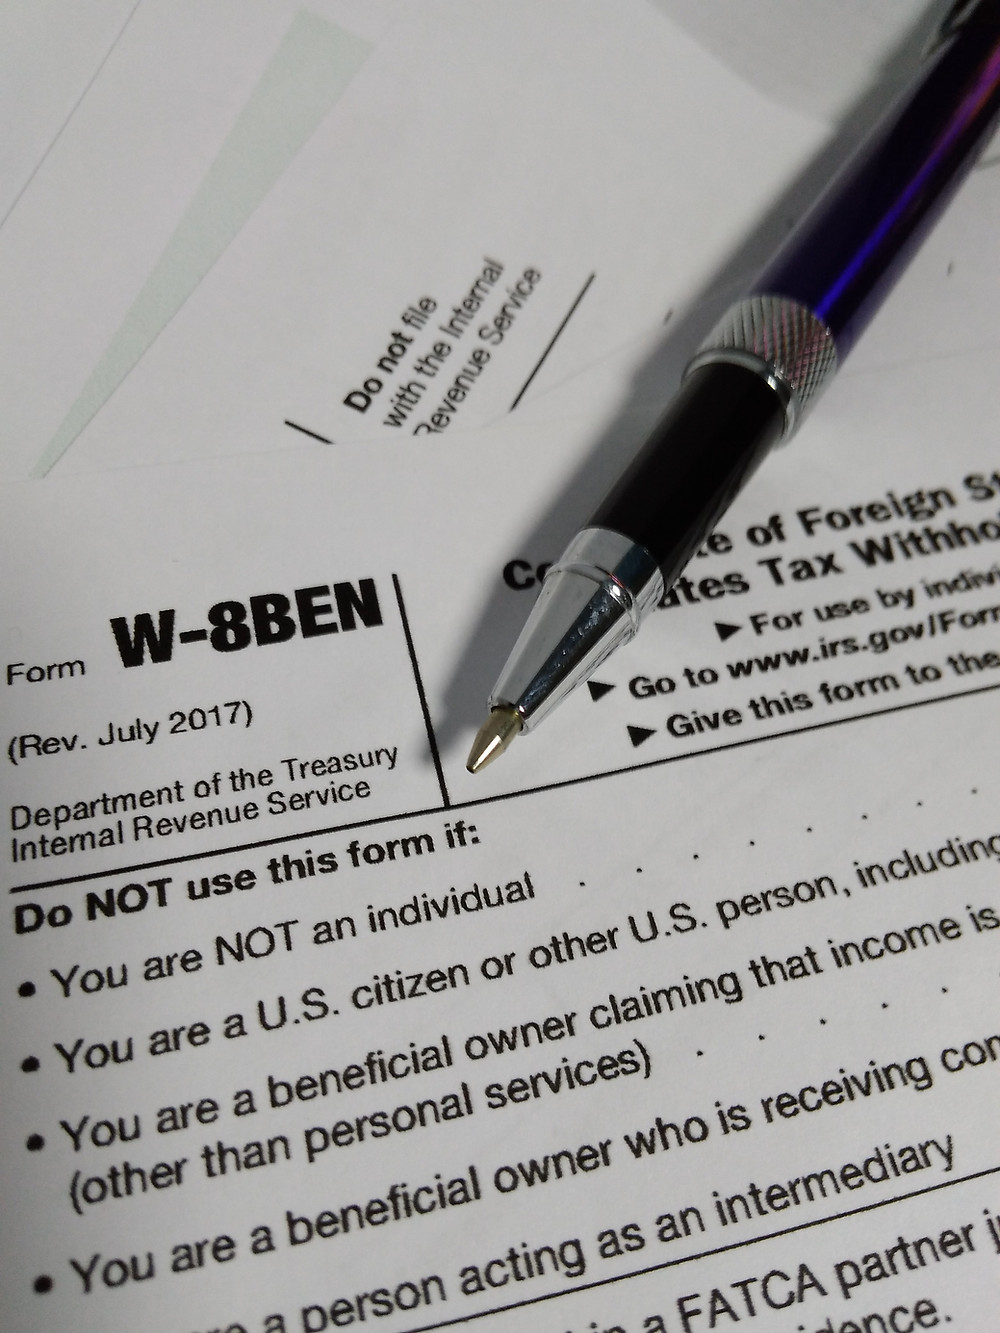 I am a UK taxpayer - how do I complete a W-8BEN